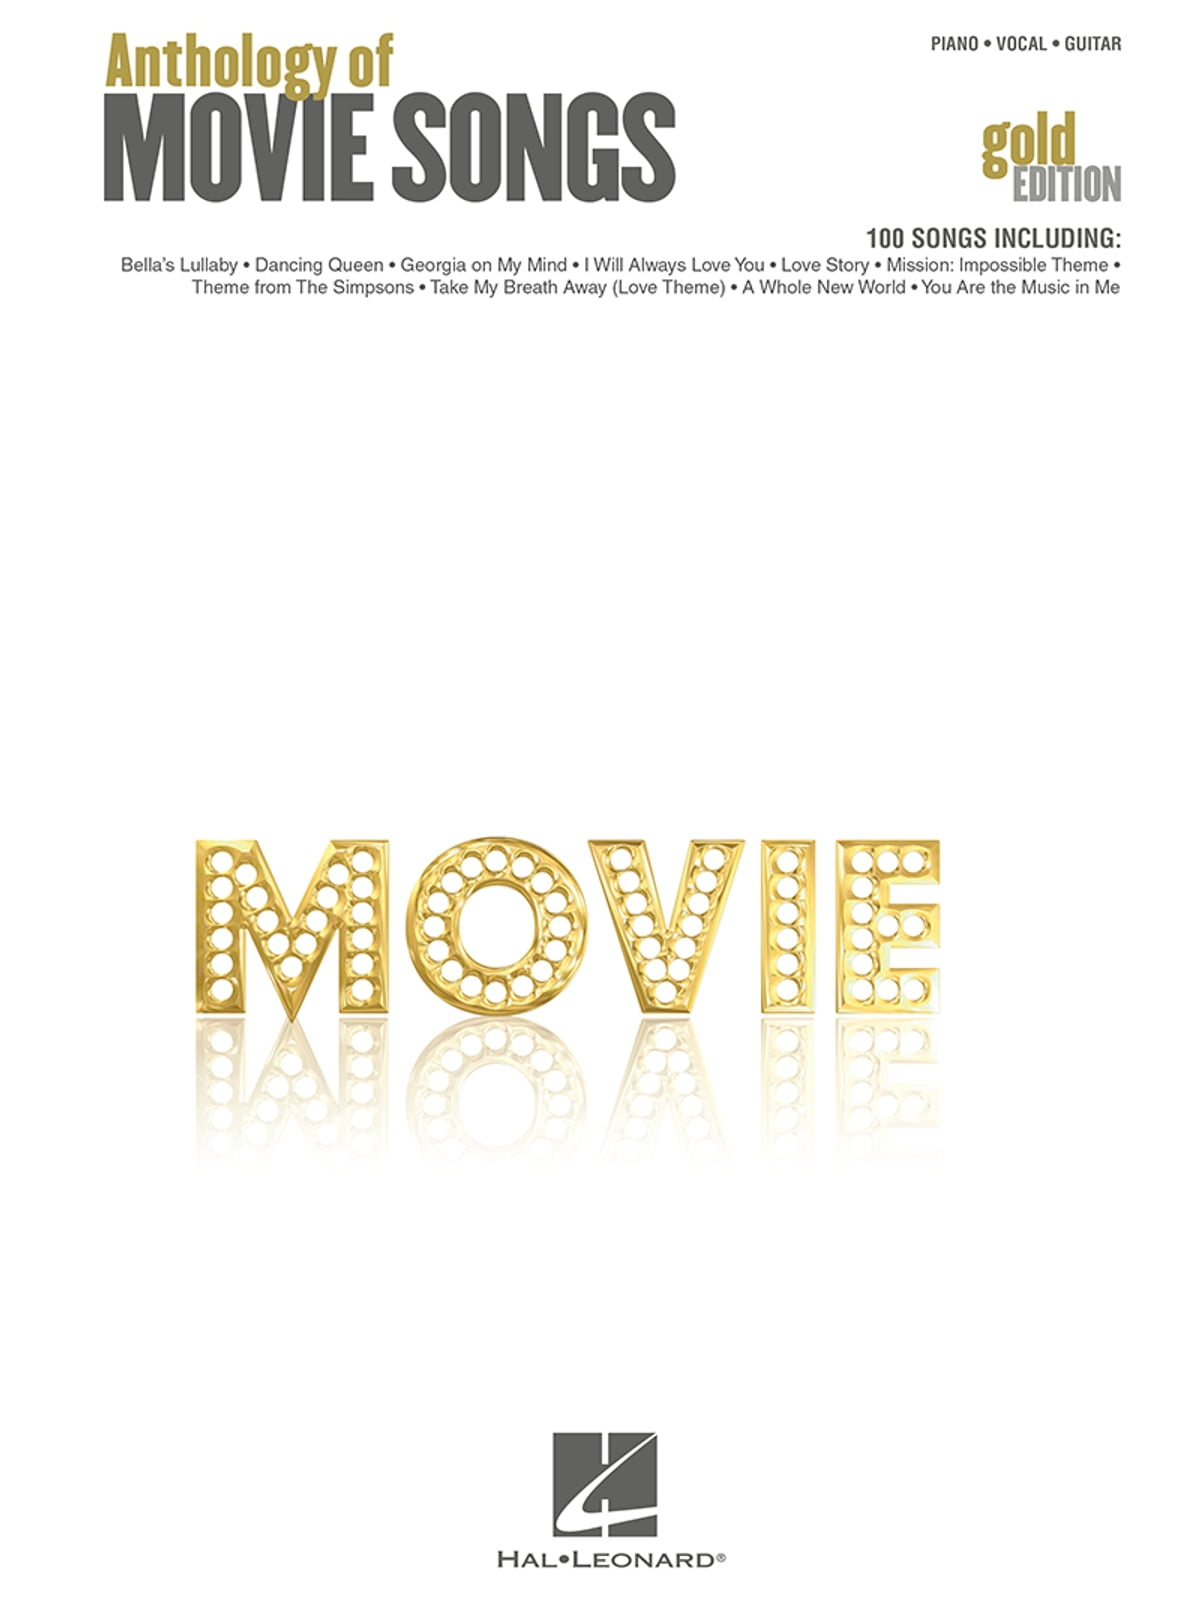 Anthology of Movie Songs - Gold Edition (Songbook) ebook by Hal Leonard  Corp  - Rakuten Kobo